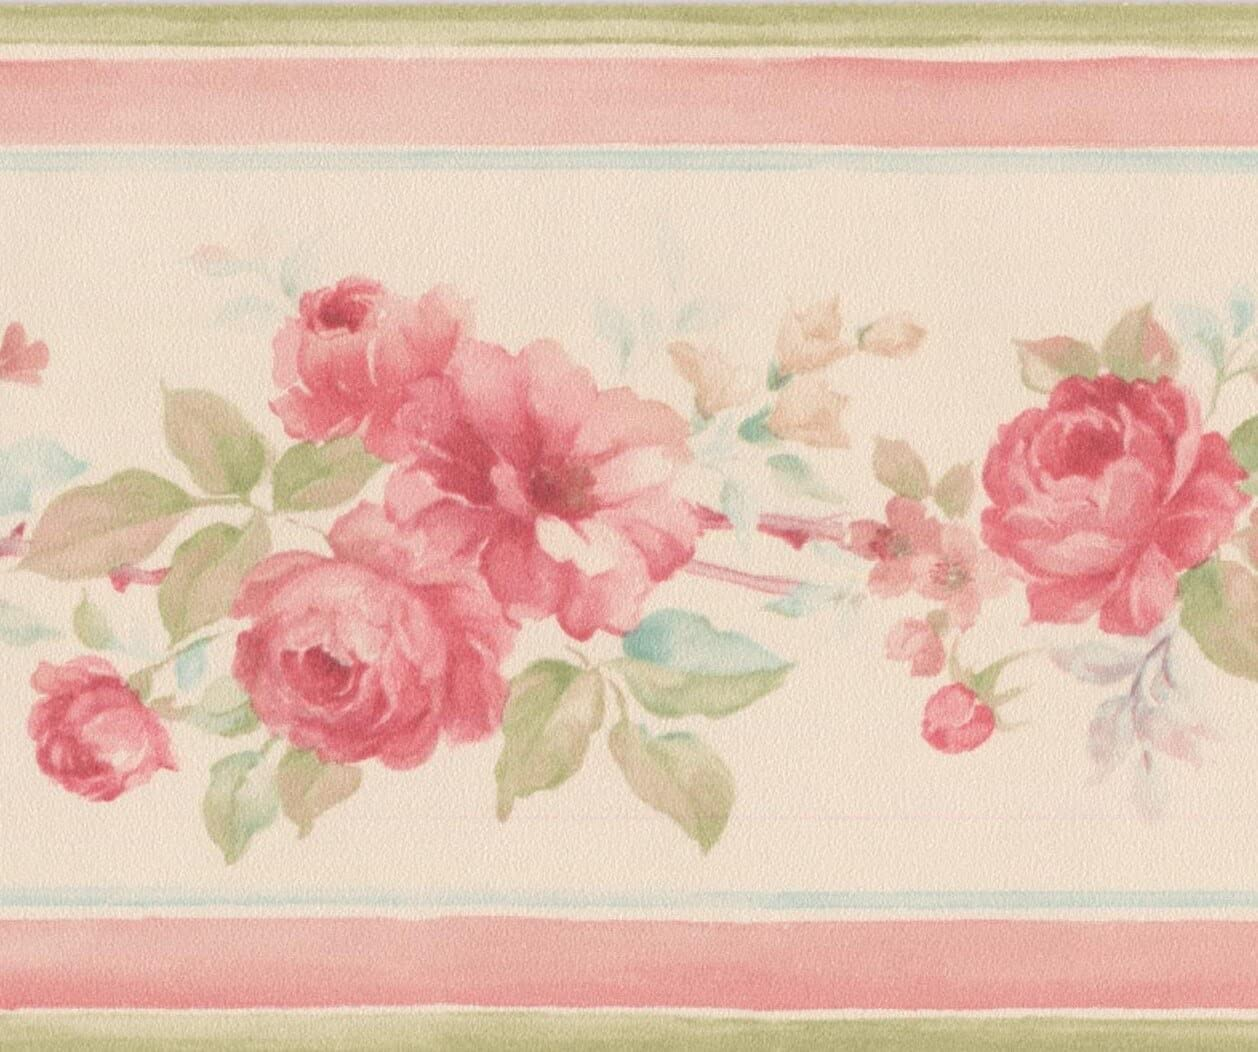 Hot Pink Roses Beige Floral Wallpaper Border Retro Design Roll 15